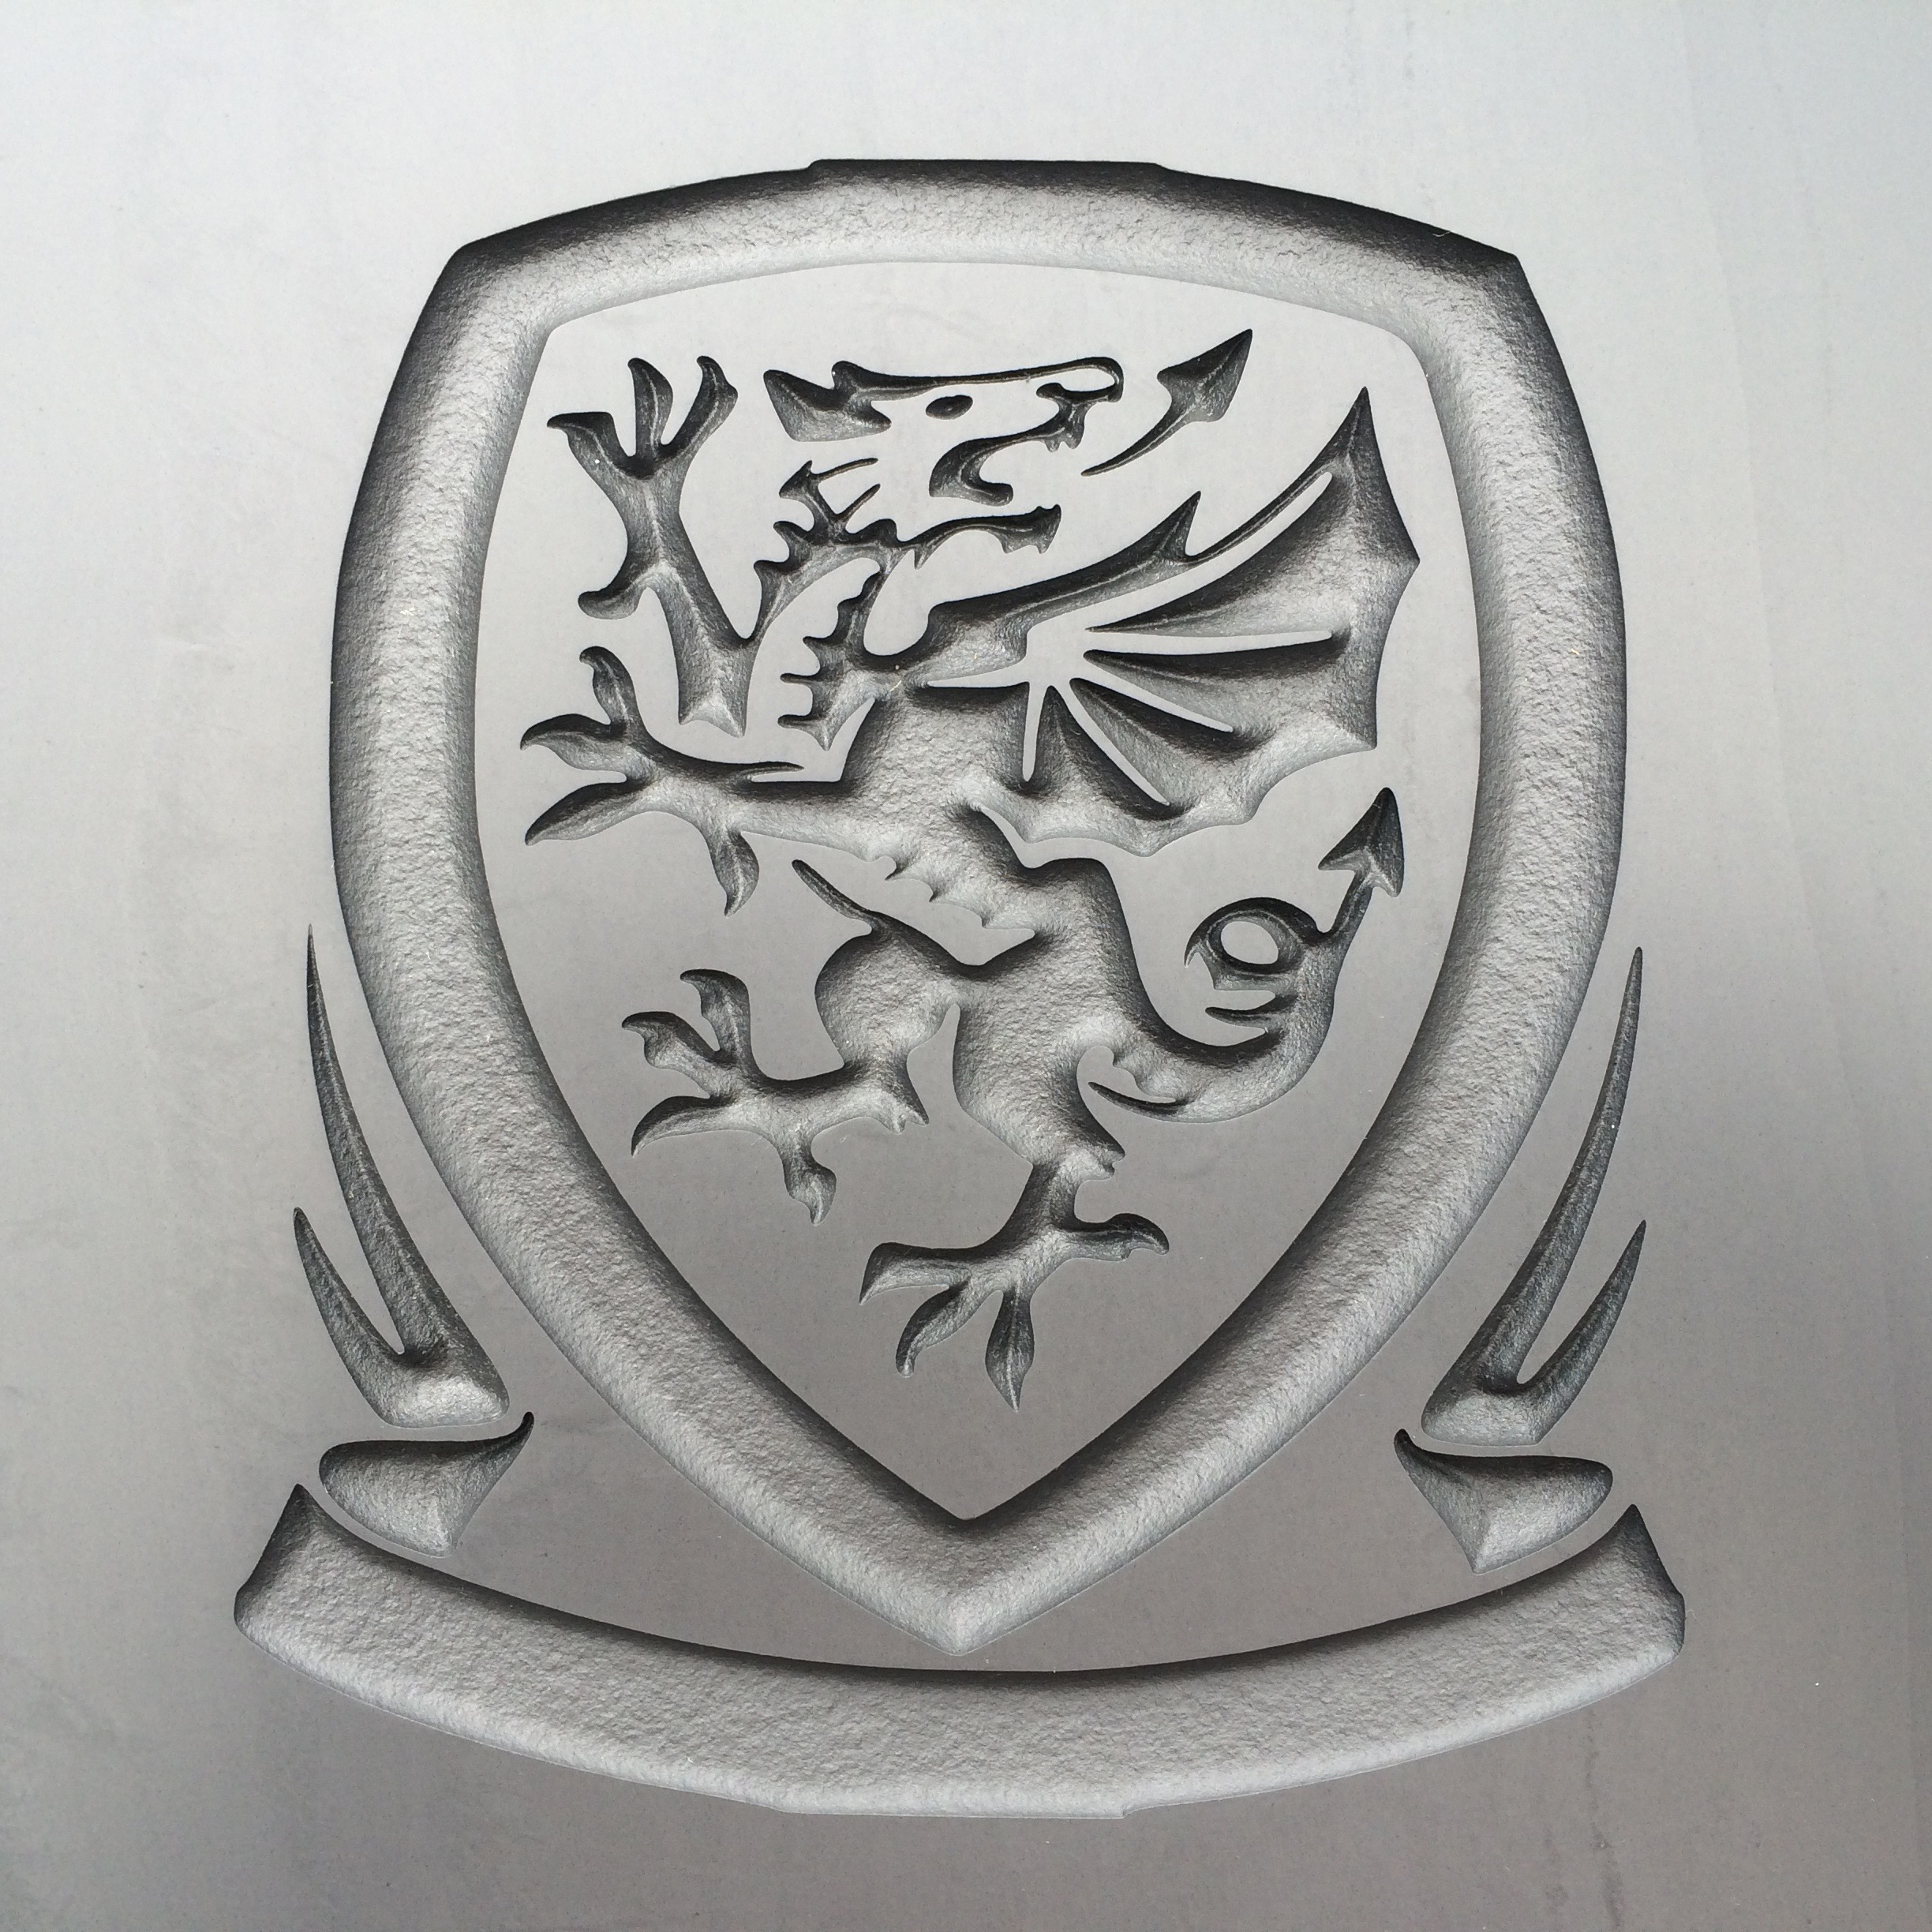 Engraved logo of the Welsh football team